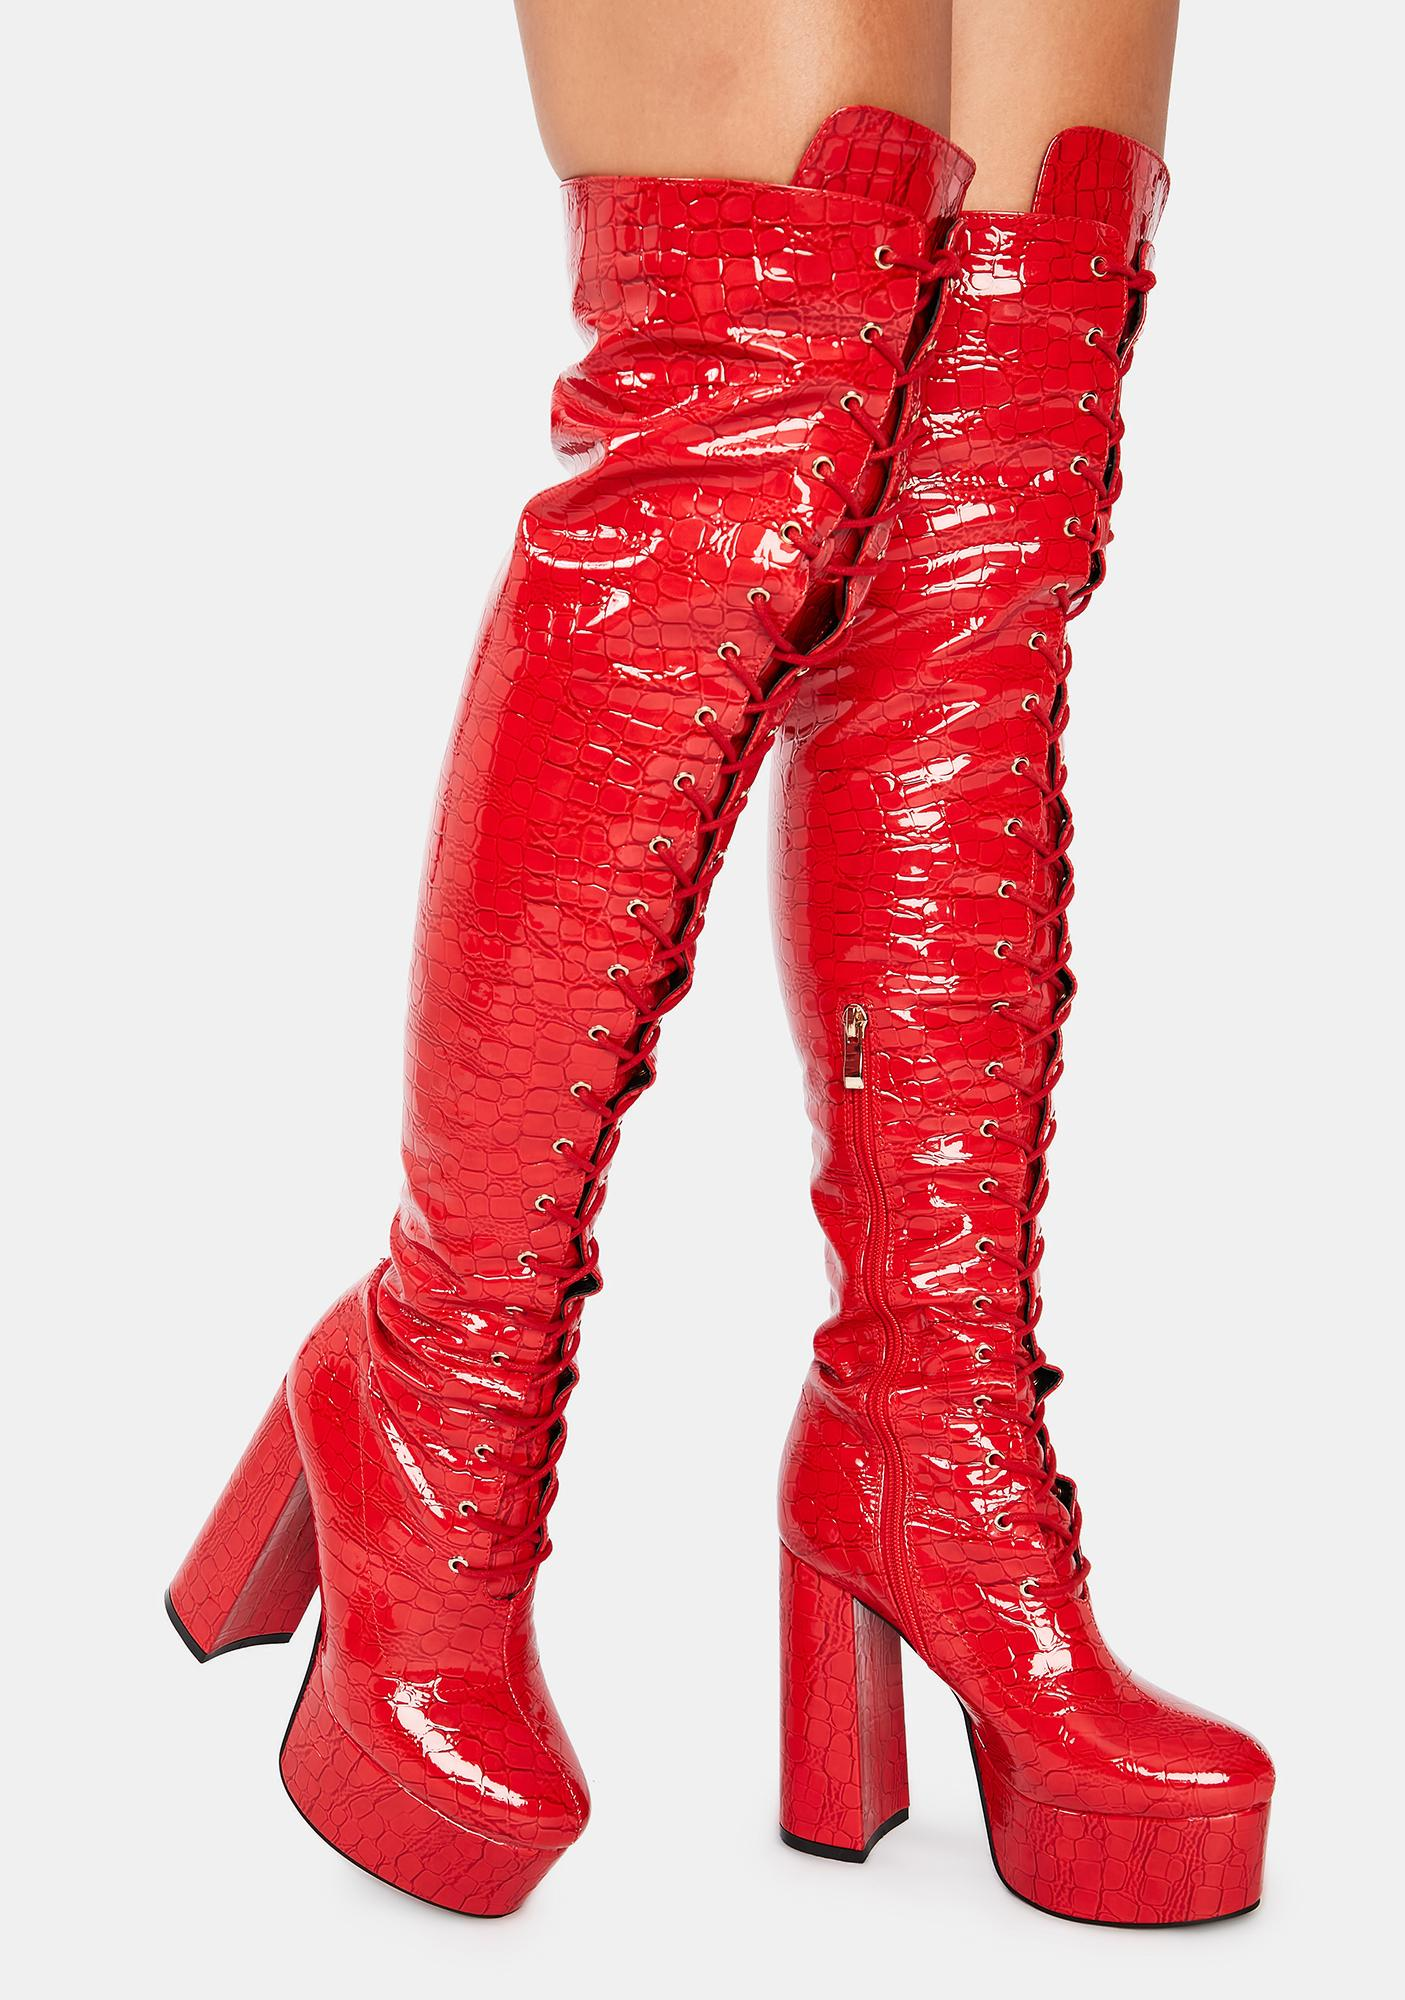 AZALEA WANG Polly Thigh High Boots